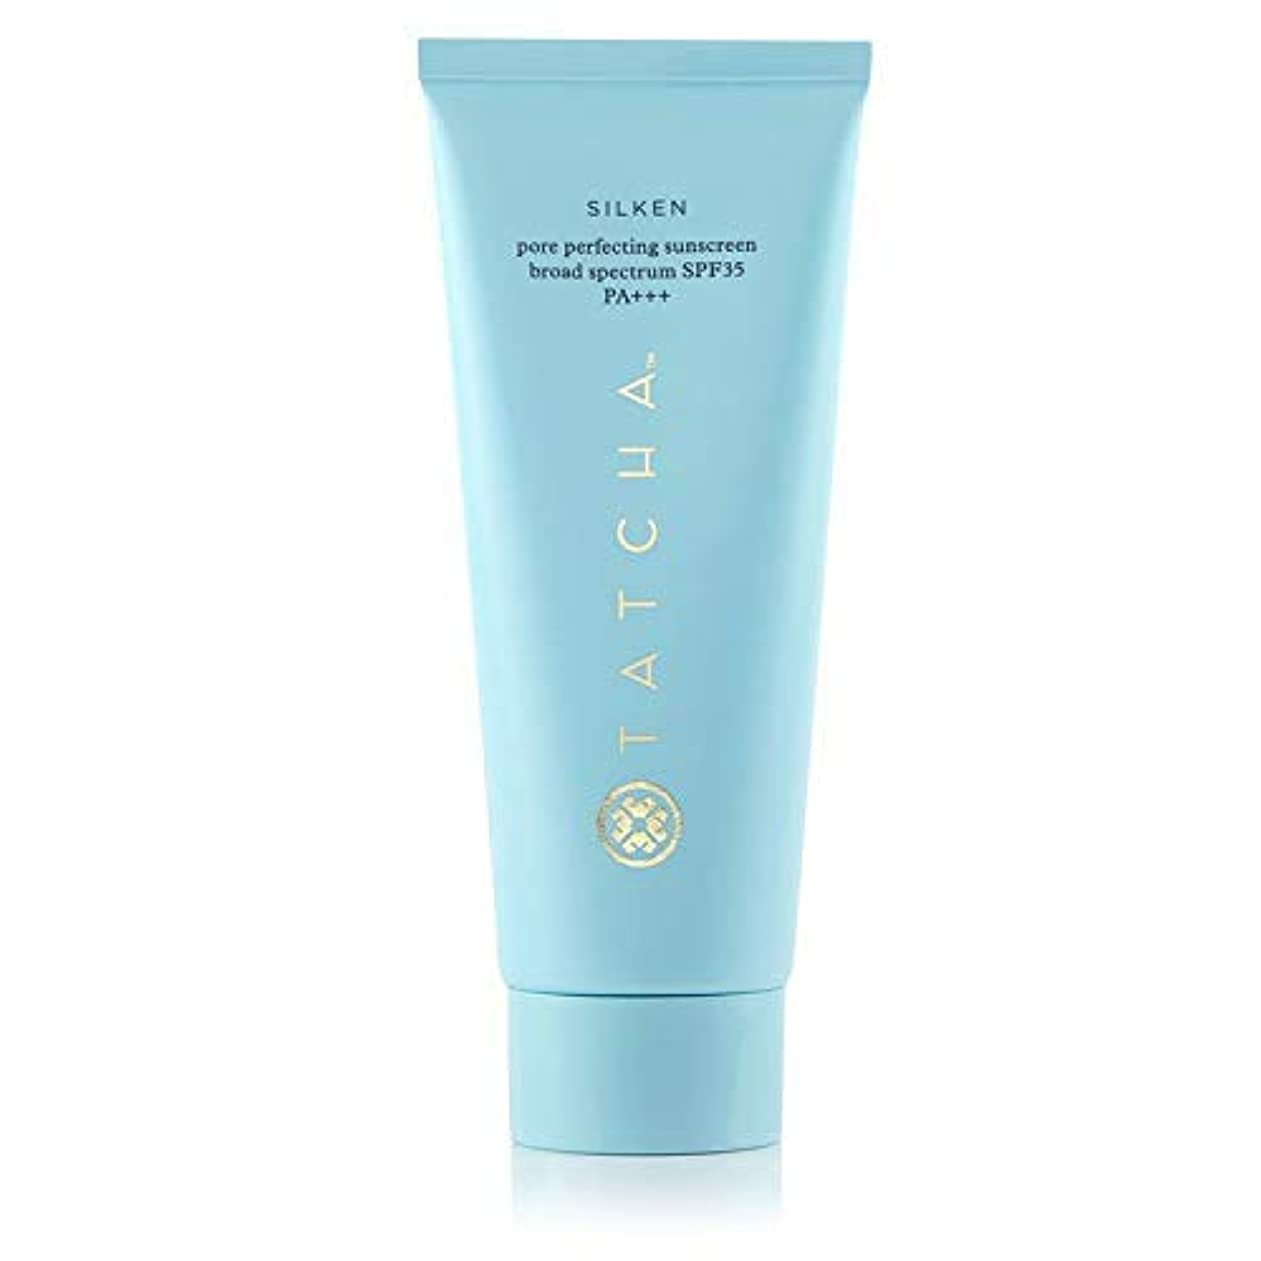 くま合法ギャラントリーTATCHA SILKEN PORE PERFECTING SUNSCREEN Broad Spectrum SPF35 PA+++ 2 oz/ 59 mLタチャ 日焼け止めクリーム